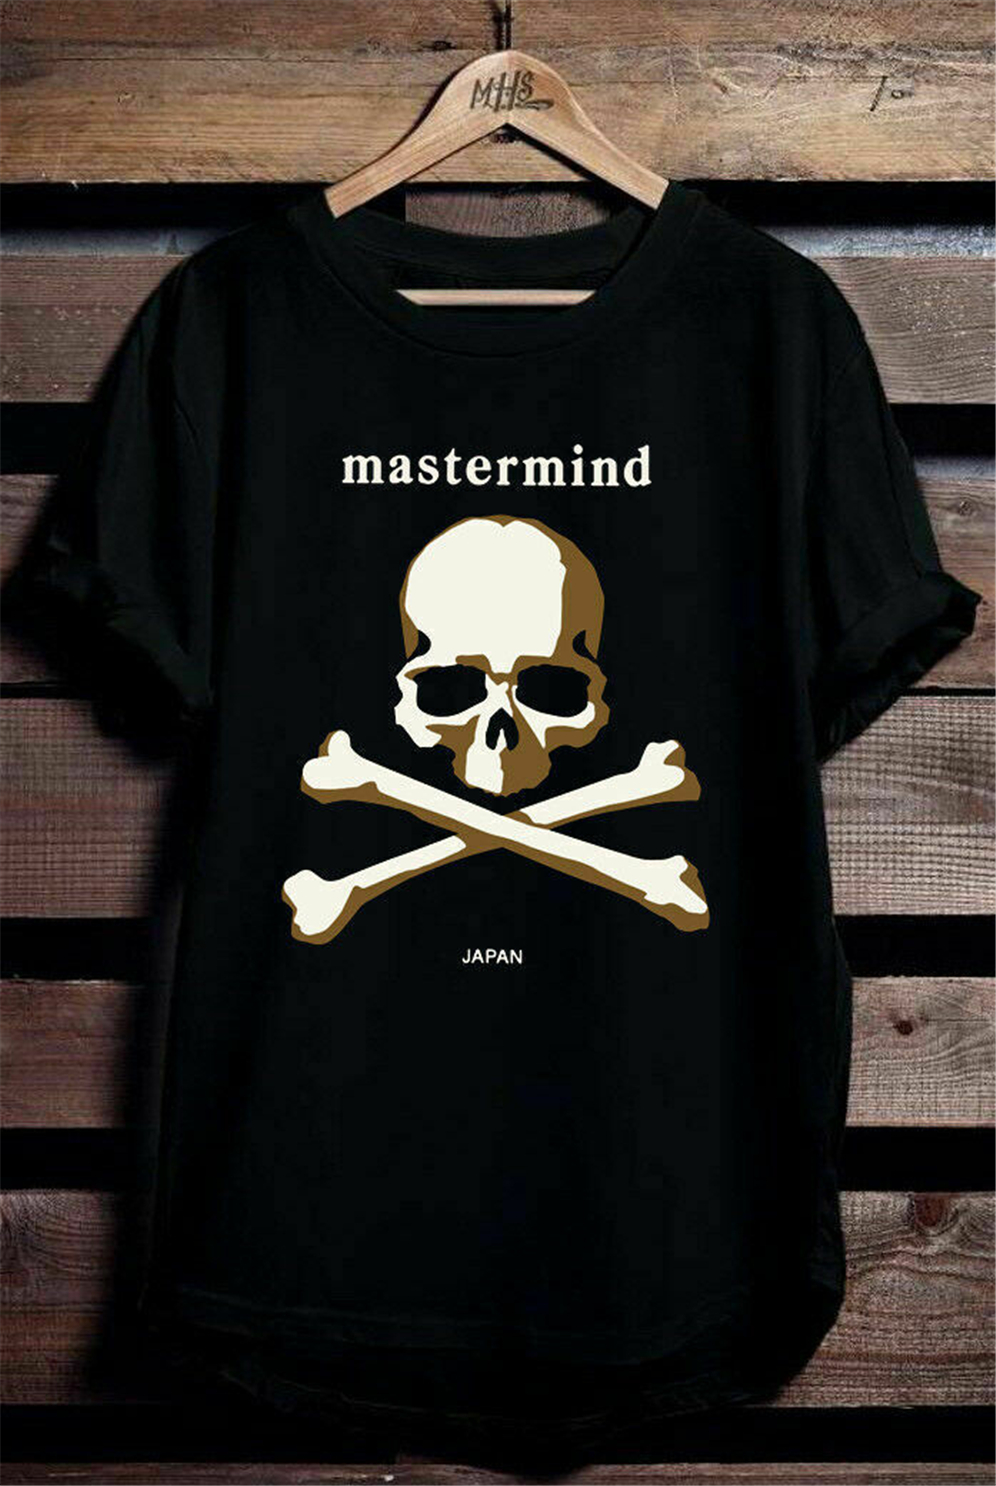 detailed look buy good sells New Mastermind Japan Logo Men'S T Shirts Black Plus Size Clothing ...